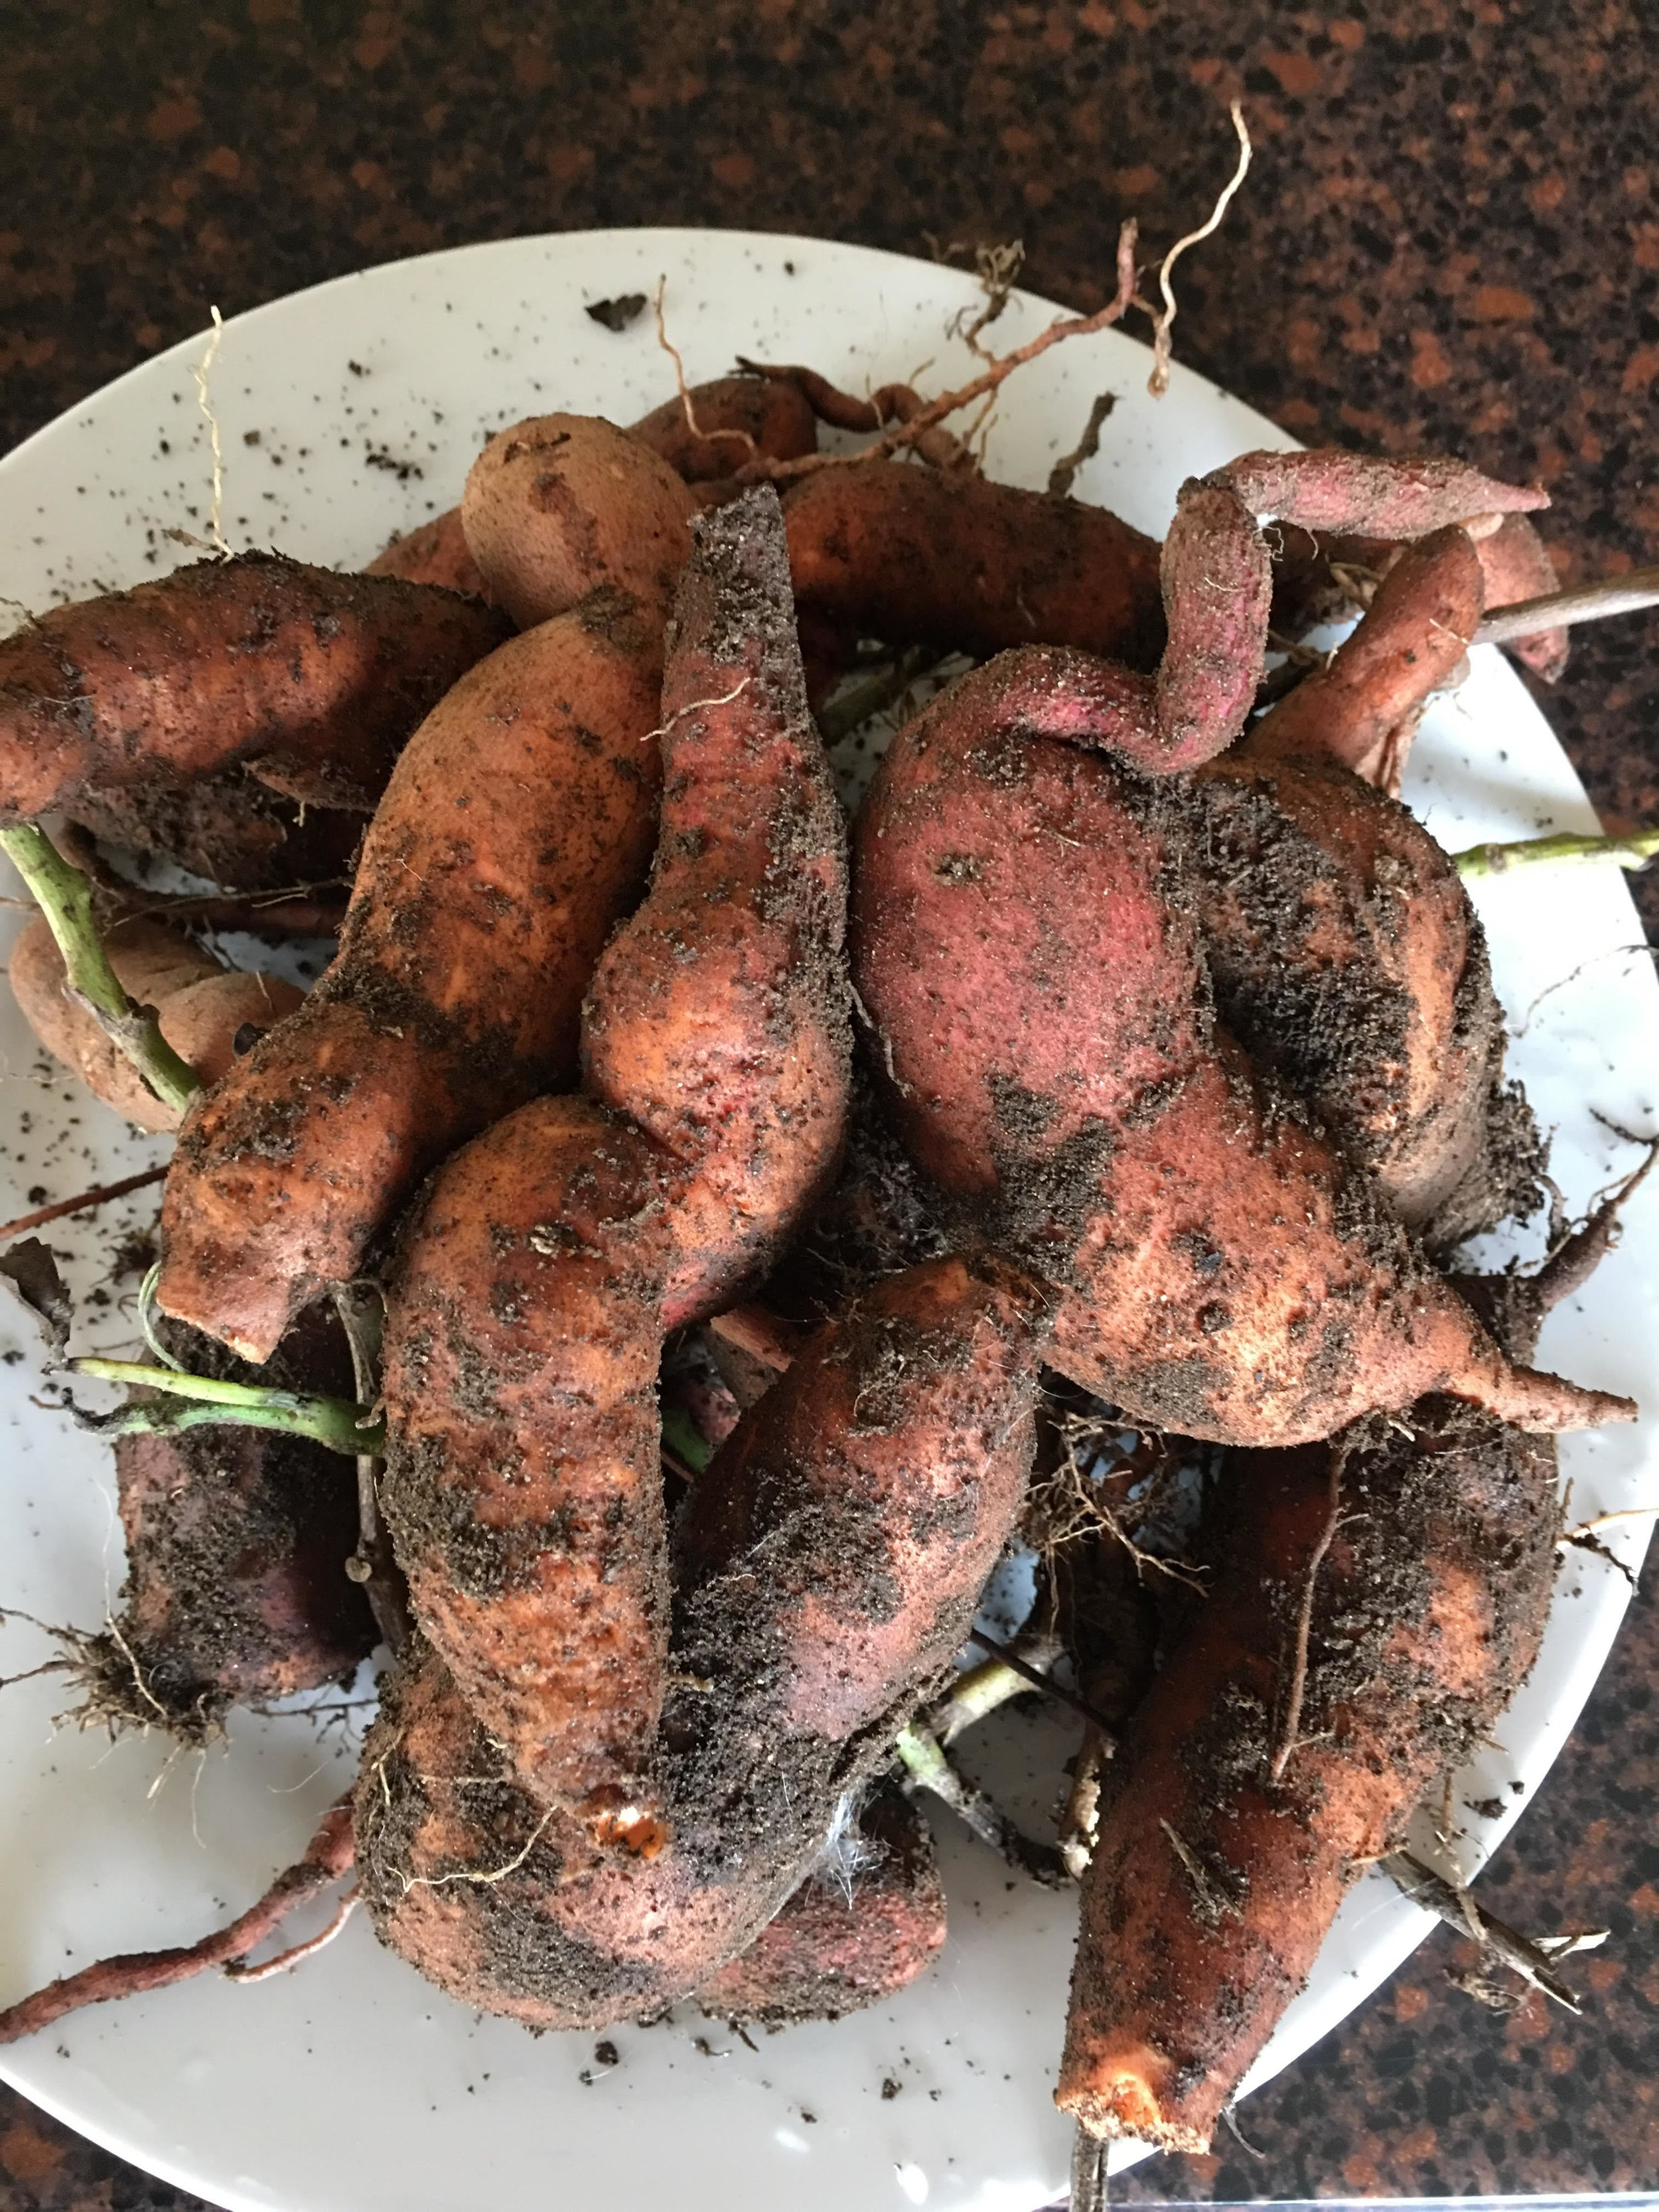 Sweet potatoes from our garden